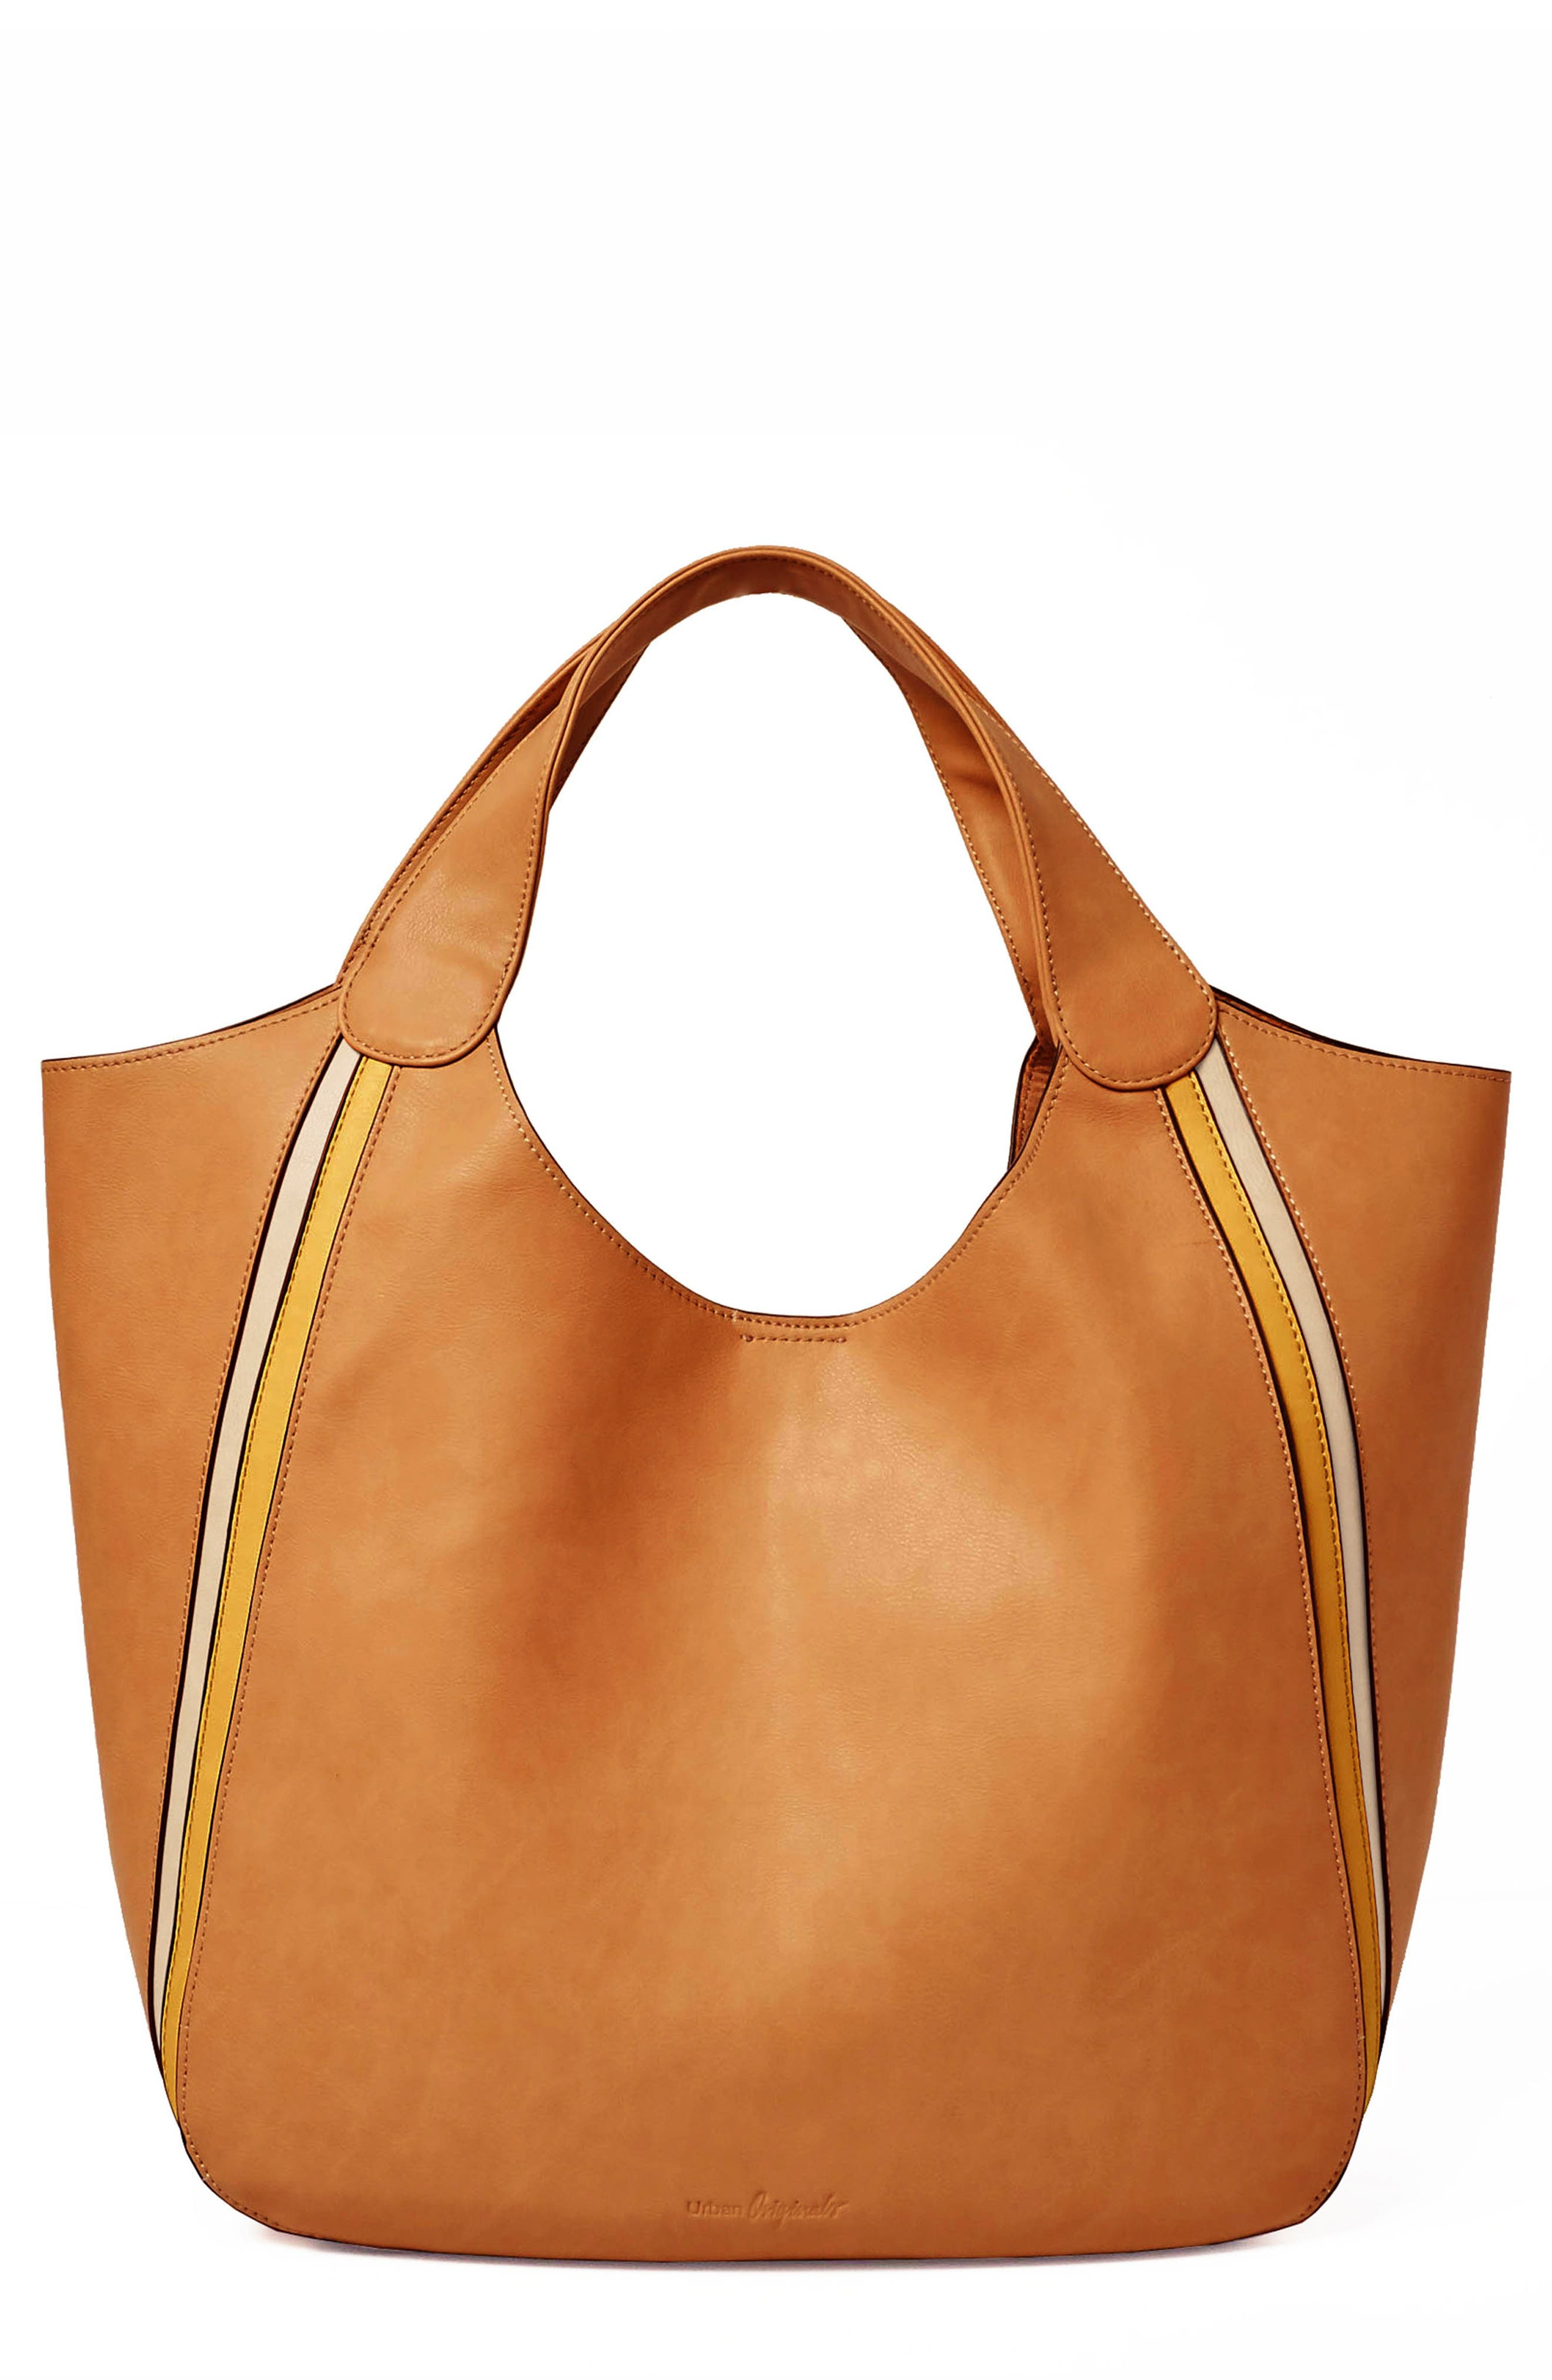 Urban Originals Viva Vegan Leather Tote with Removable Zip Pouch